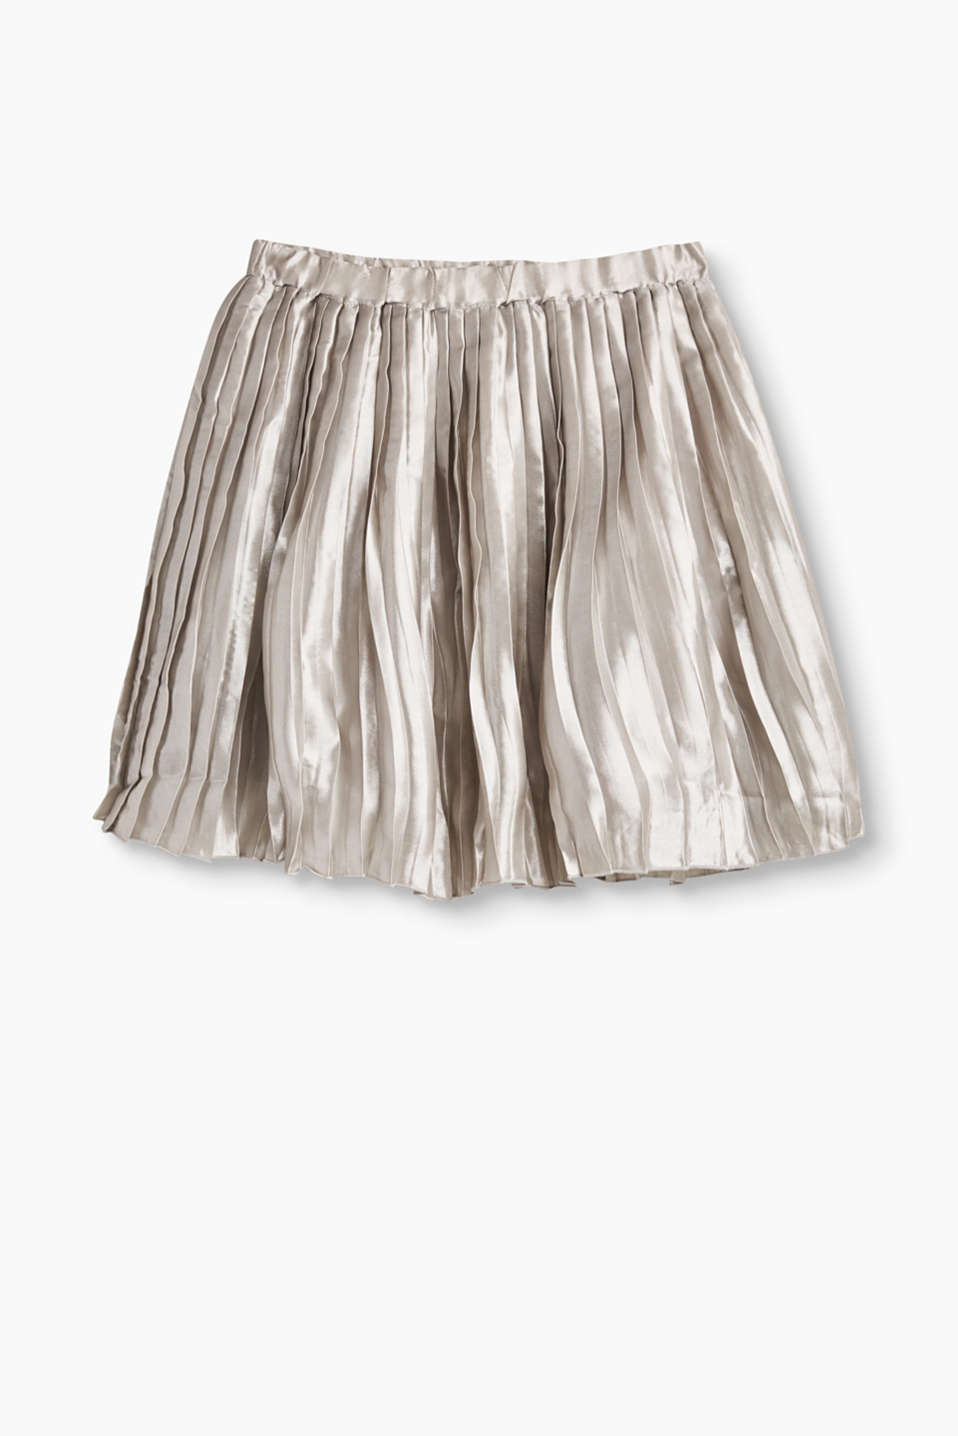 Esprit - Plissérok in coole metallic look